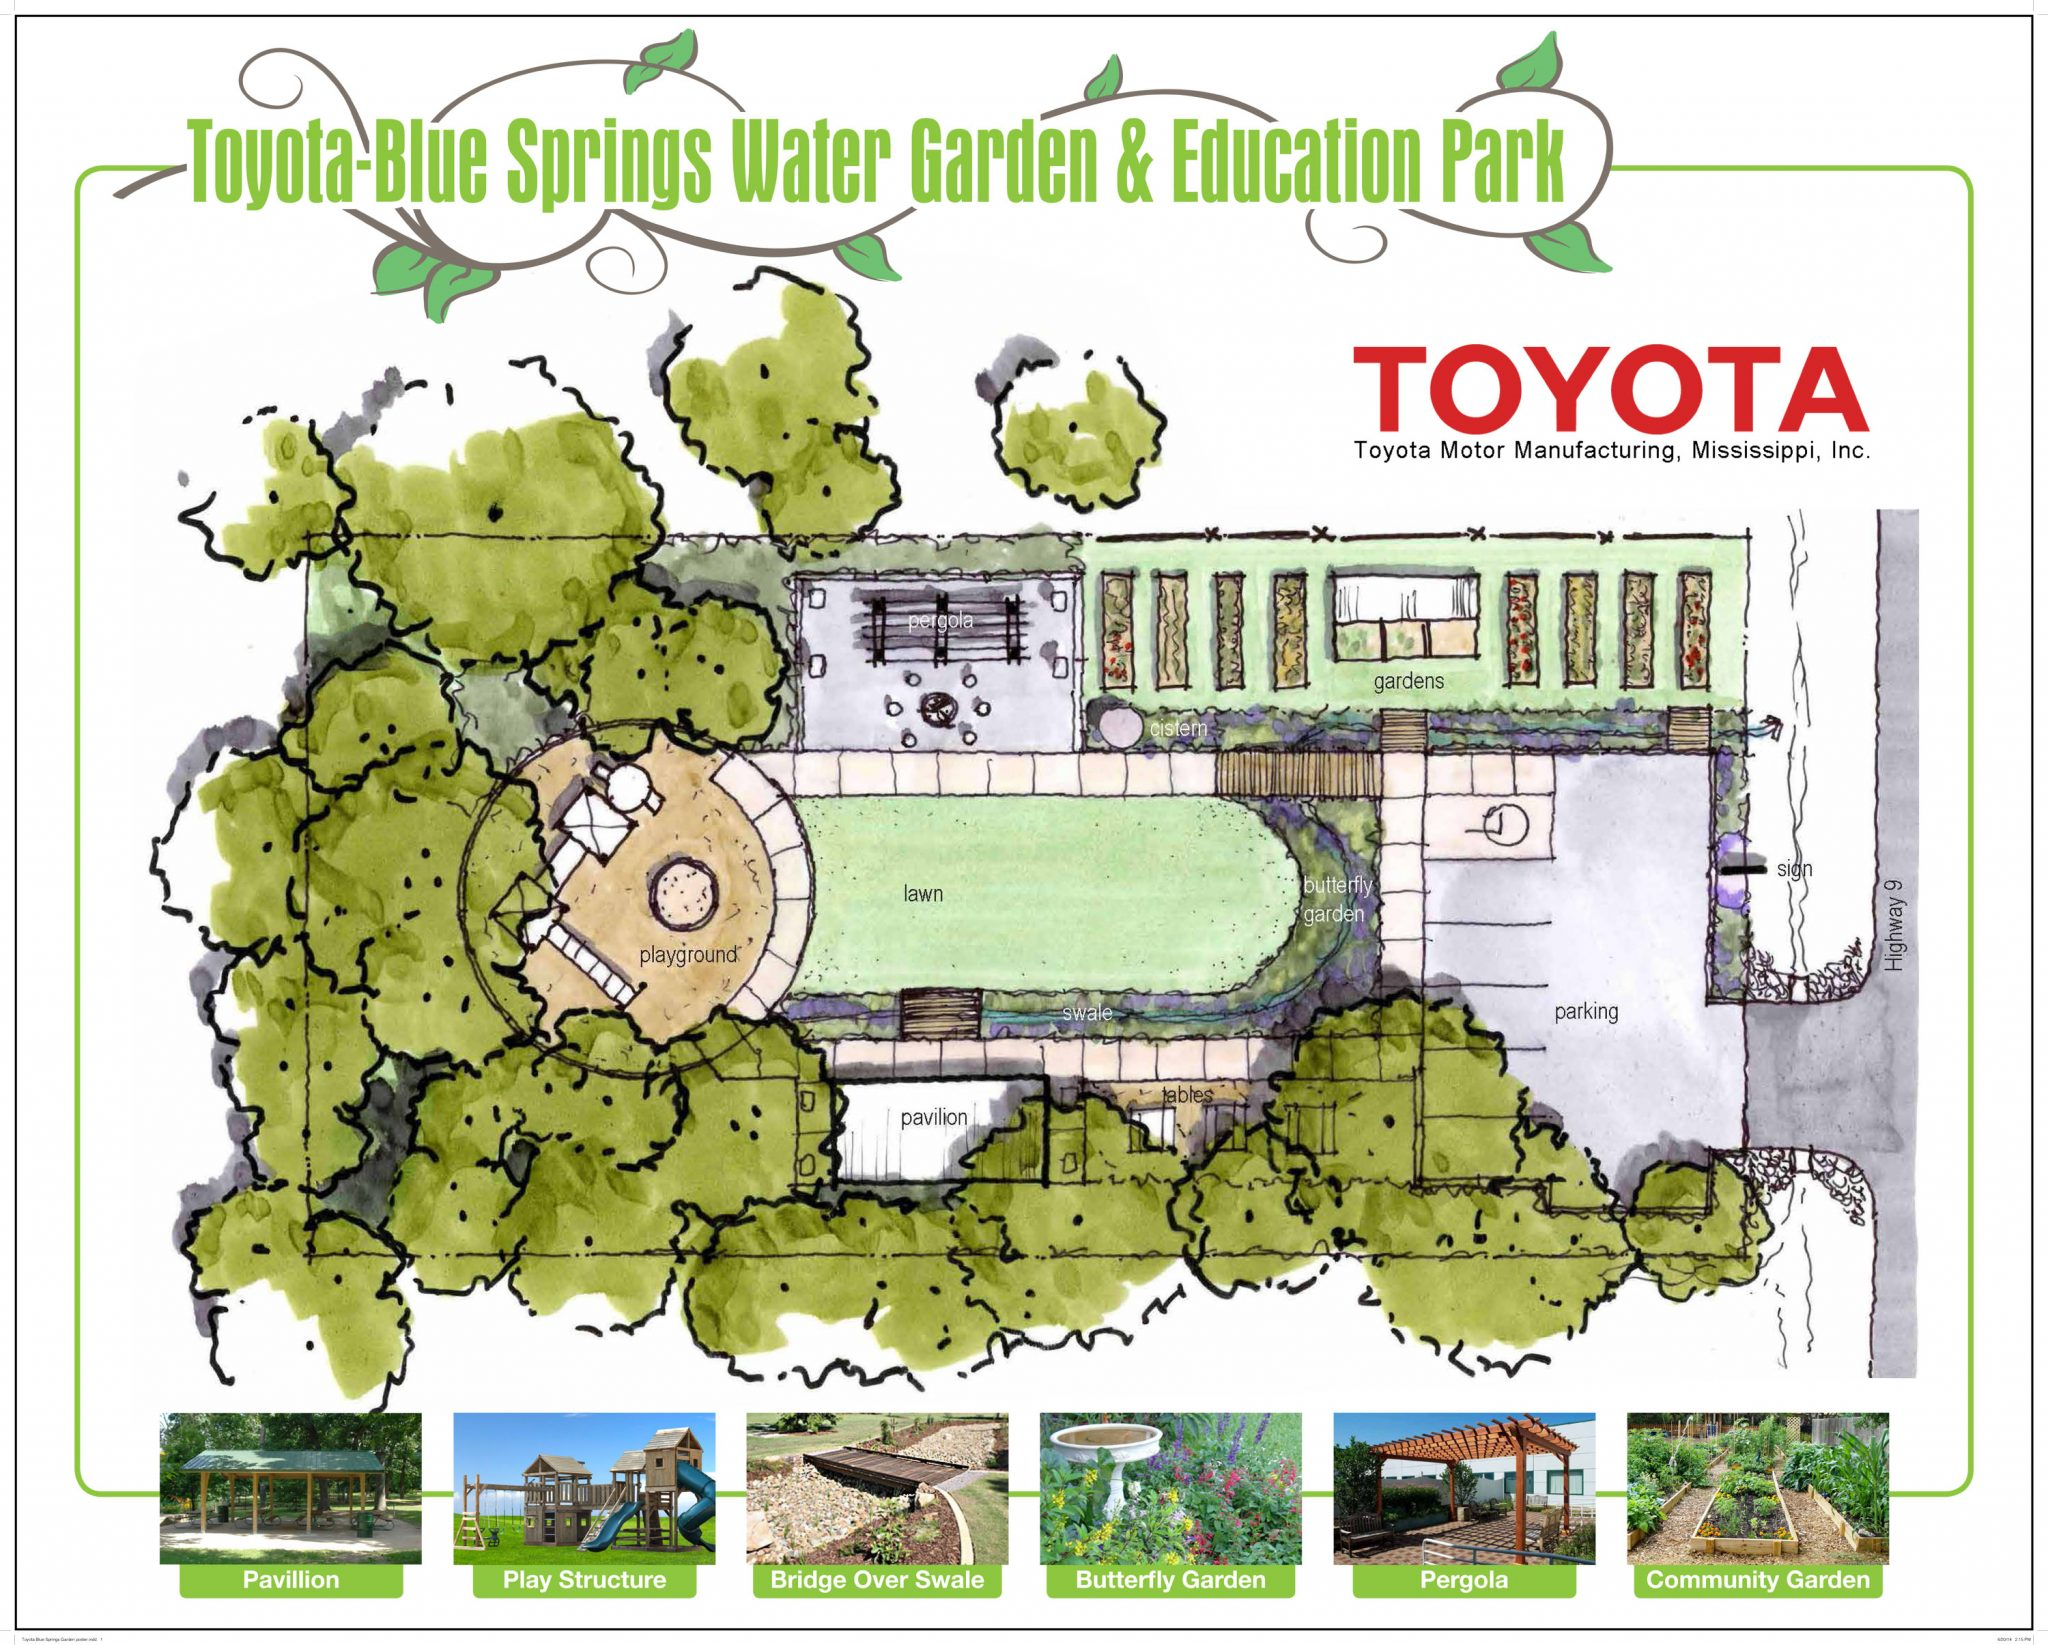 Toyota-Blue Springs Water Garden and Education Park